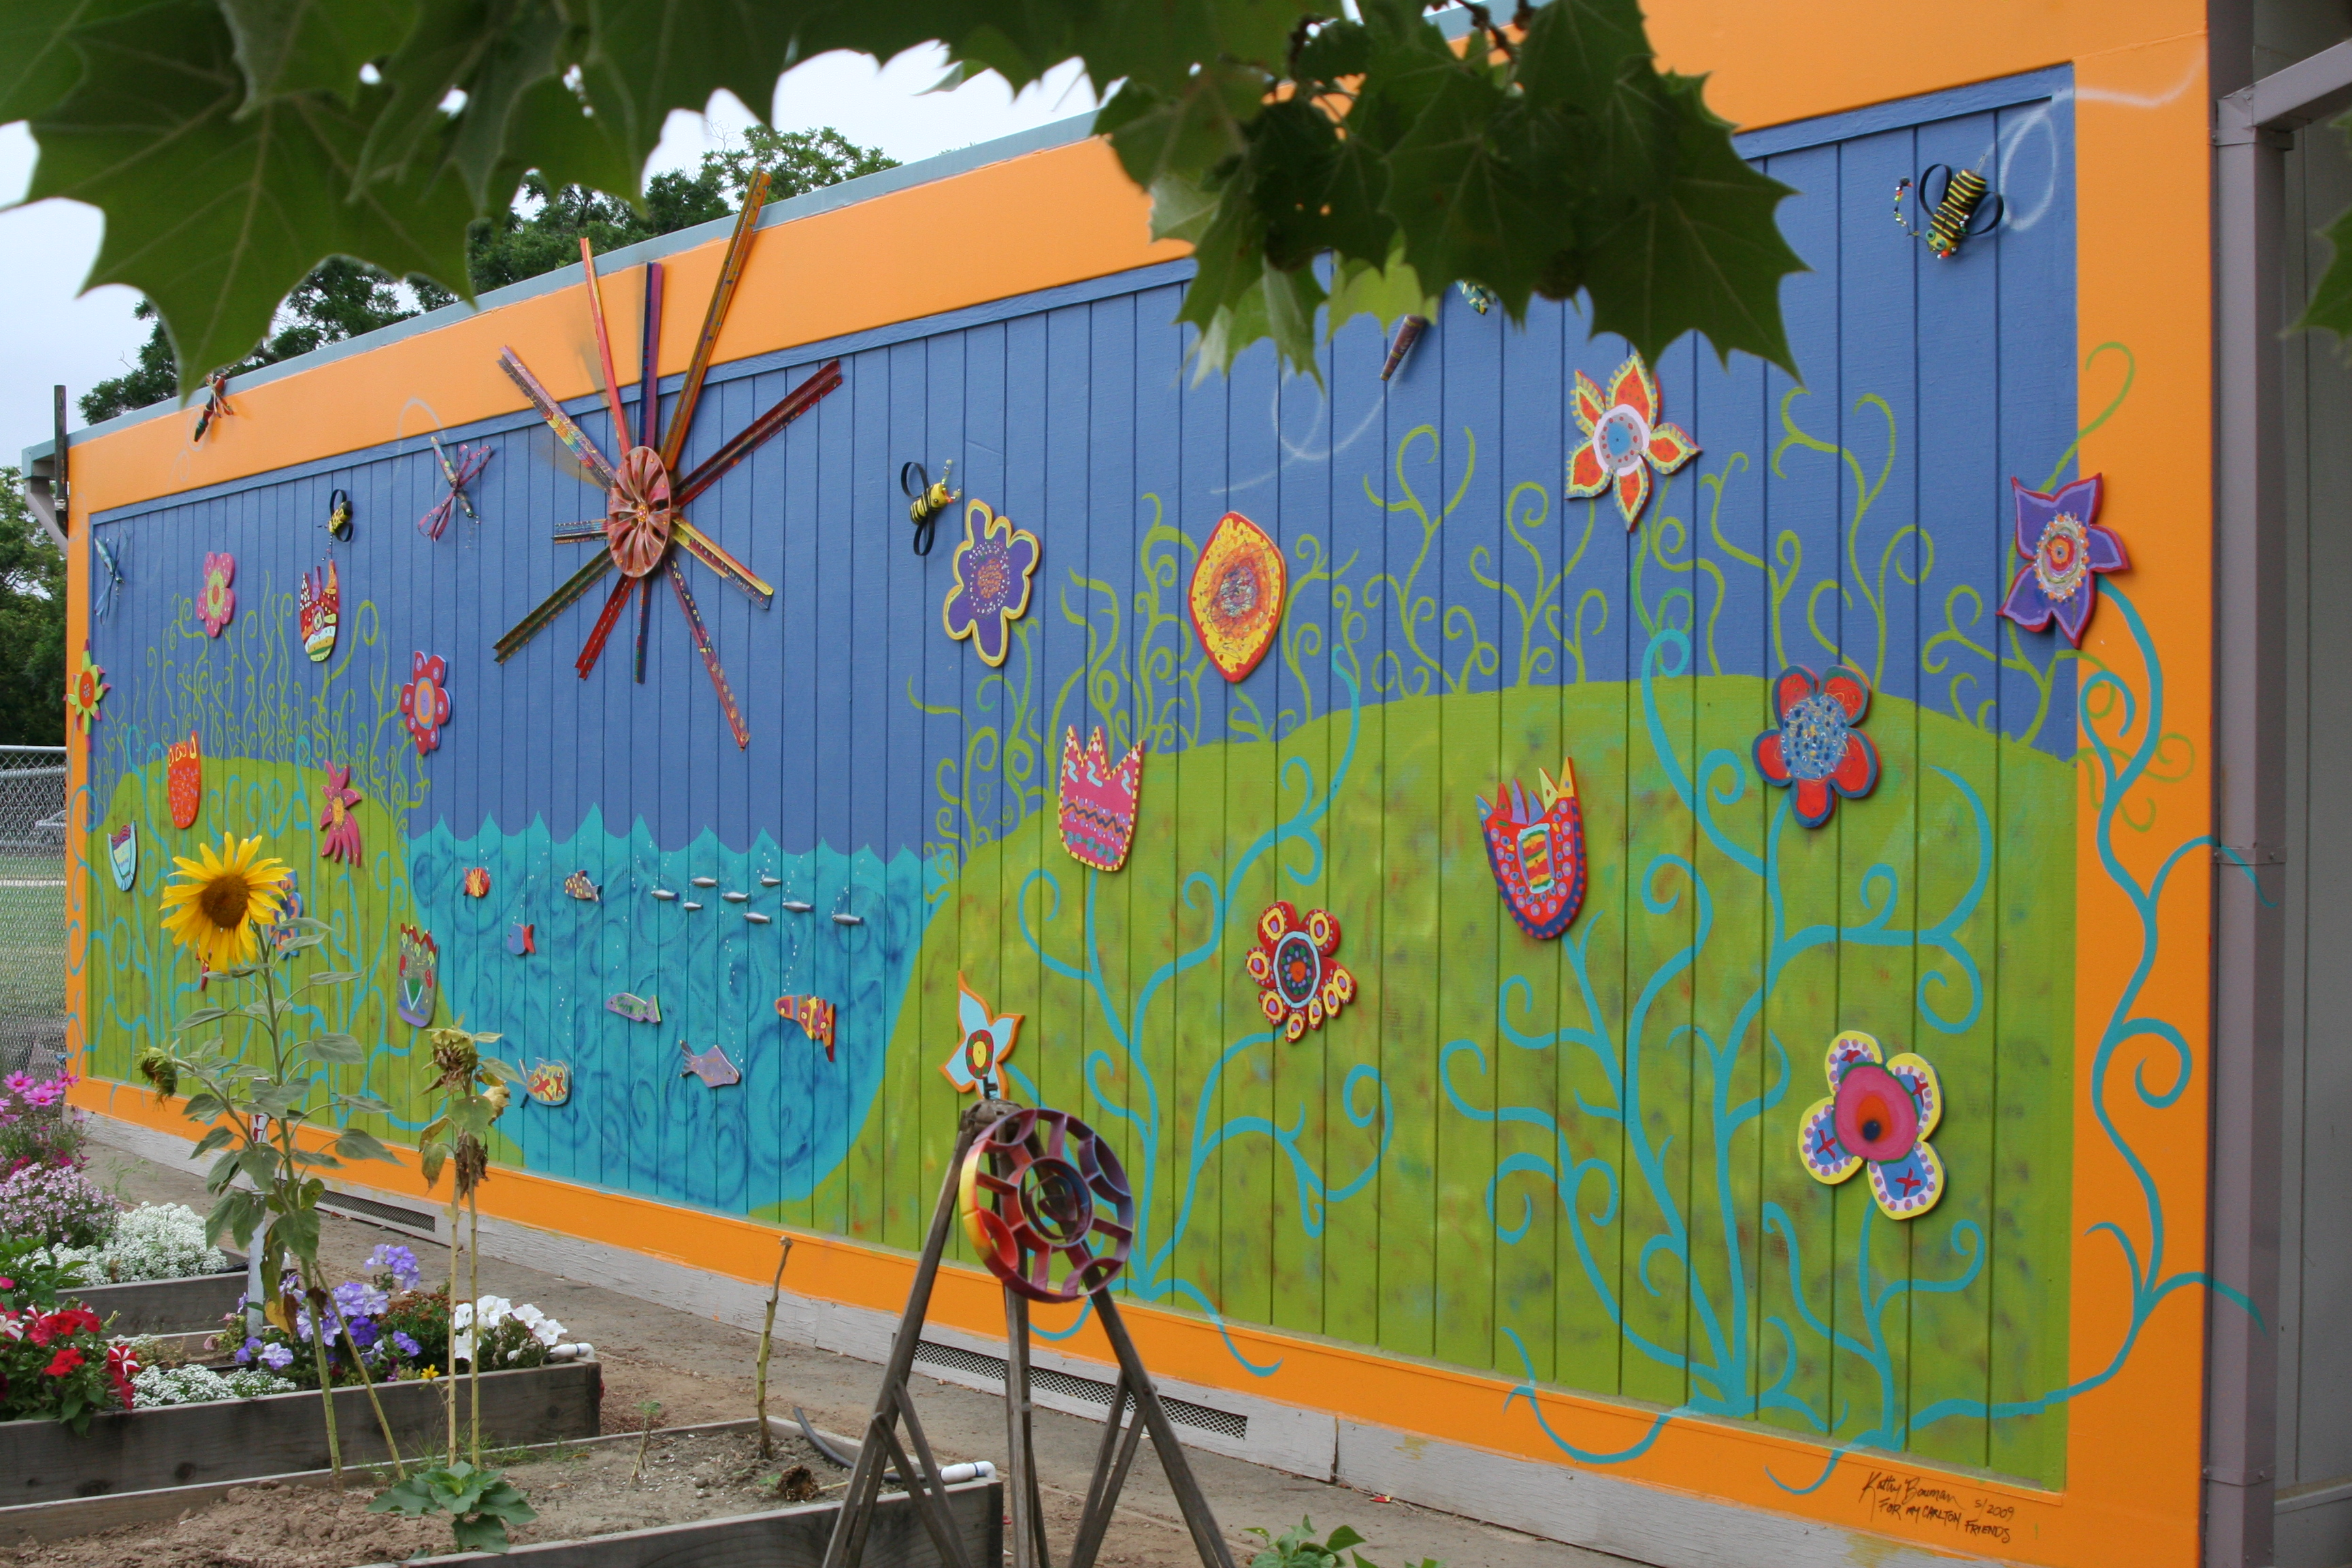 A-mural-painted-at-a-school-The-sun-dragonflies-bees-and-fish-were-all-made-from-materials-found-wallpaper-wp3002904